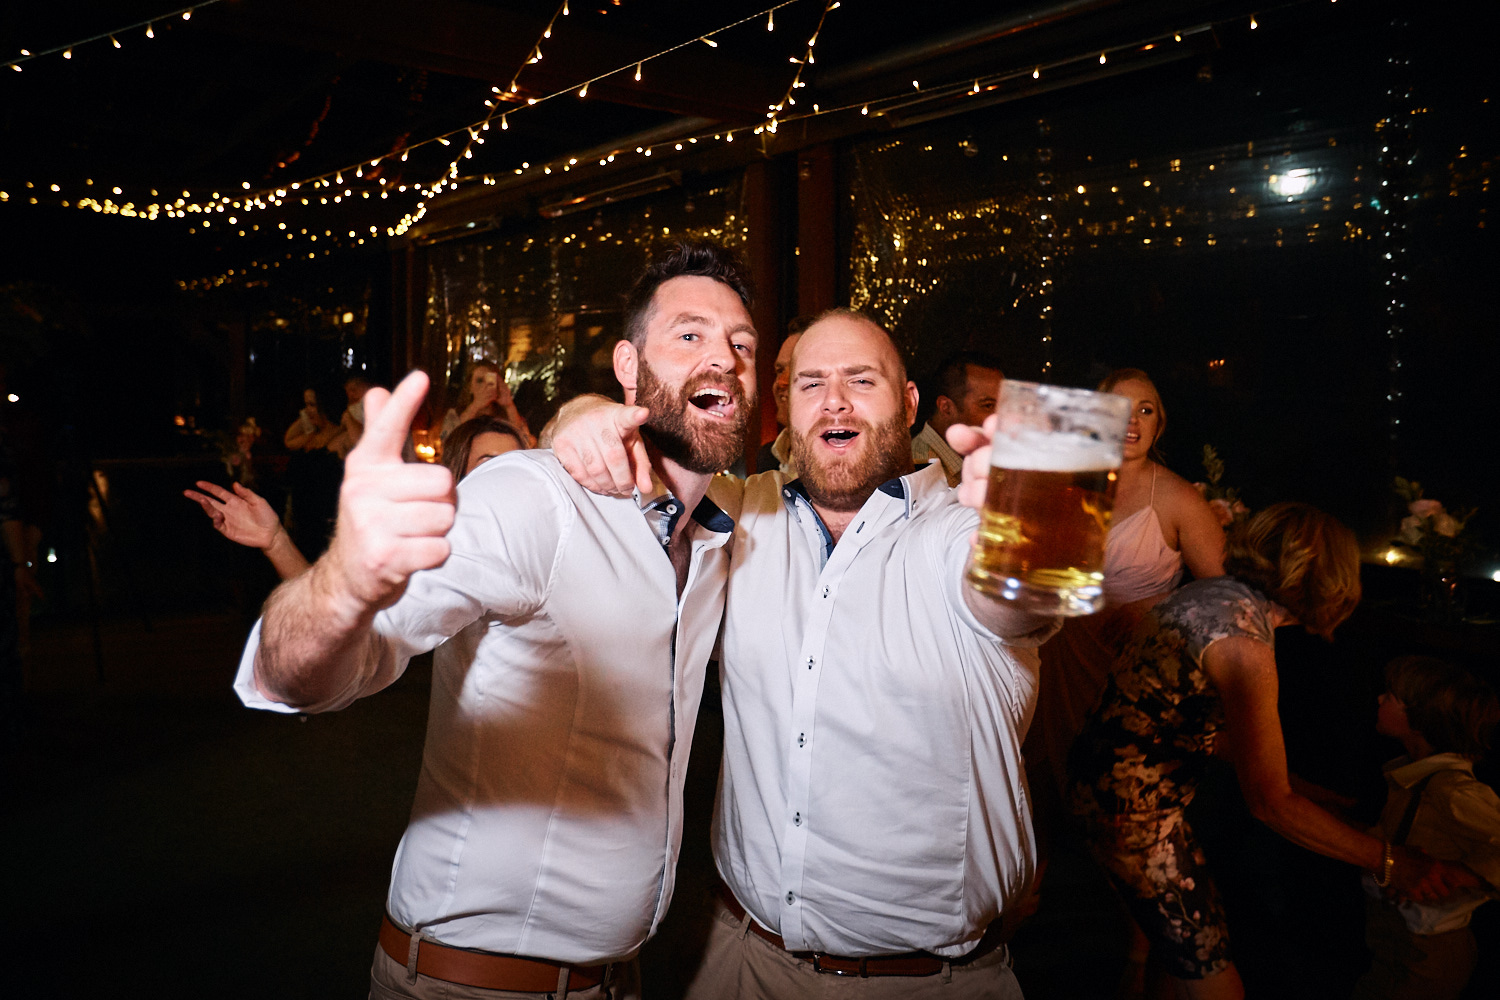 Guests celebrate during reception at Estate Tuscany Pokolbin in the Hunter Valley by wedding photographer Joshua Witheford